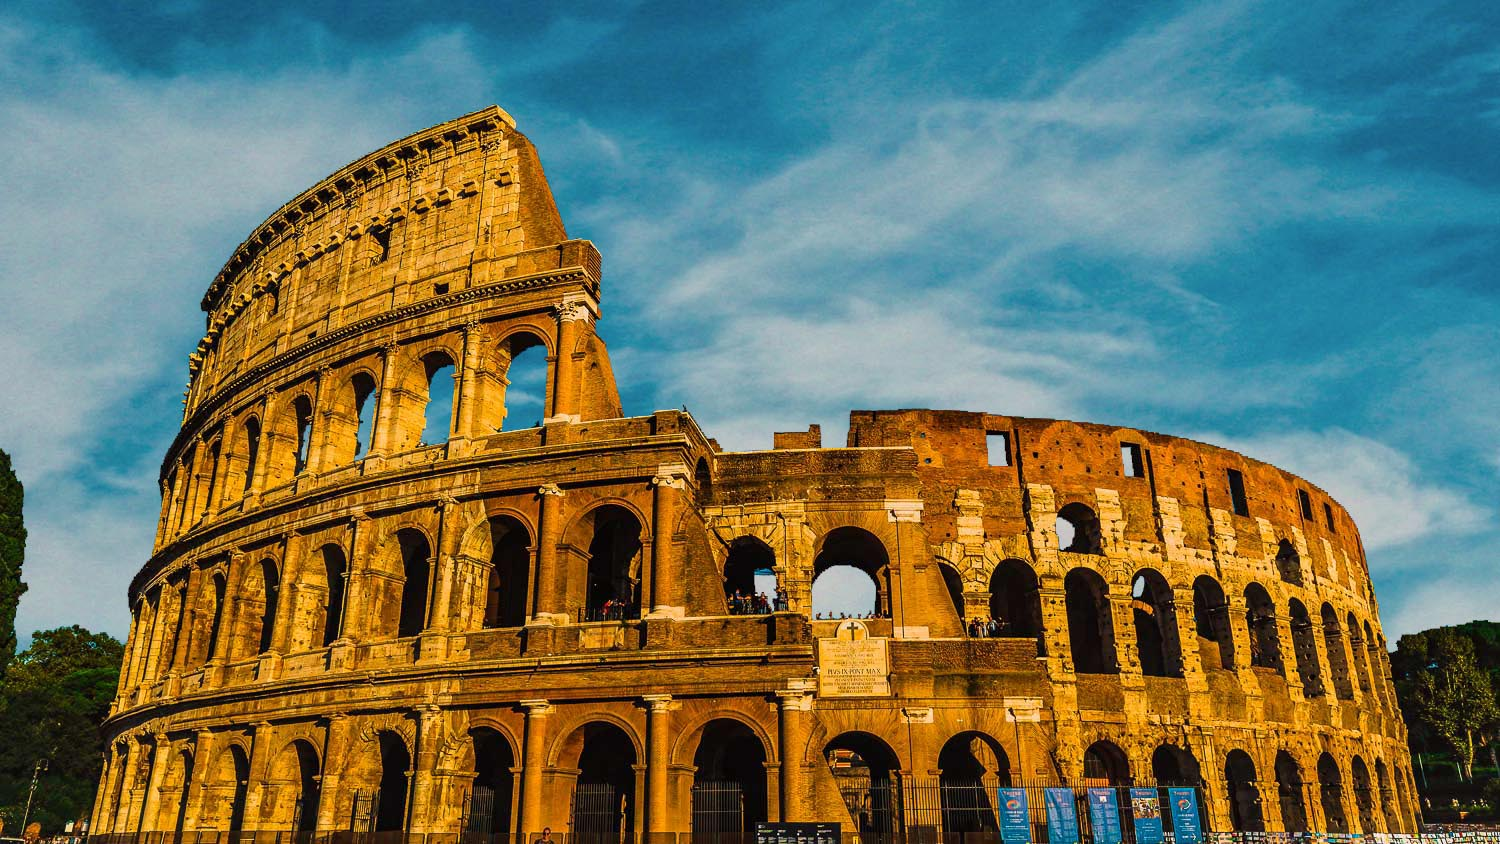 The-Colosseum-the-simbol-of-Rome-you-cant-miss-to-visit-in-Rome-in-winter